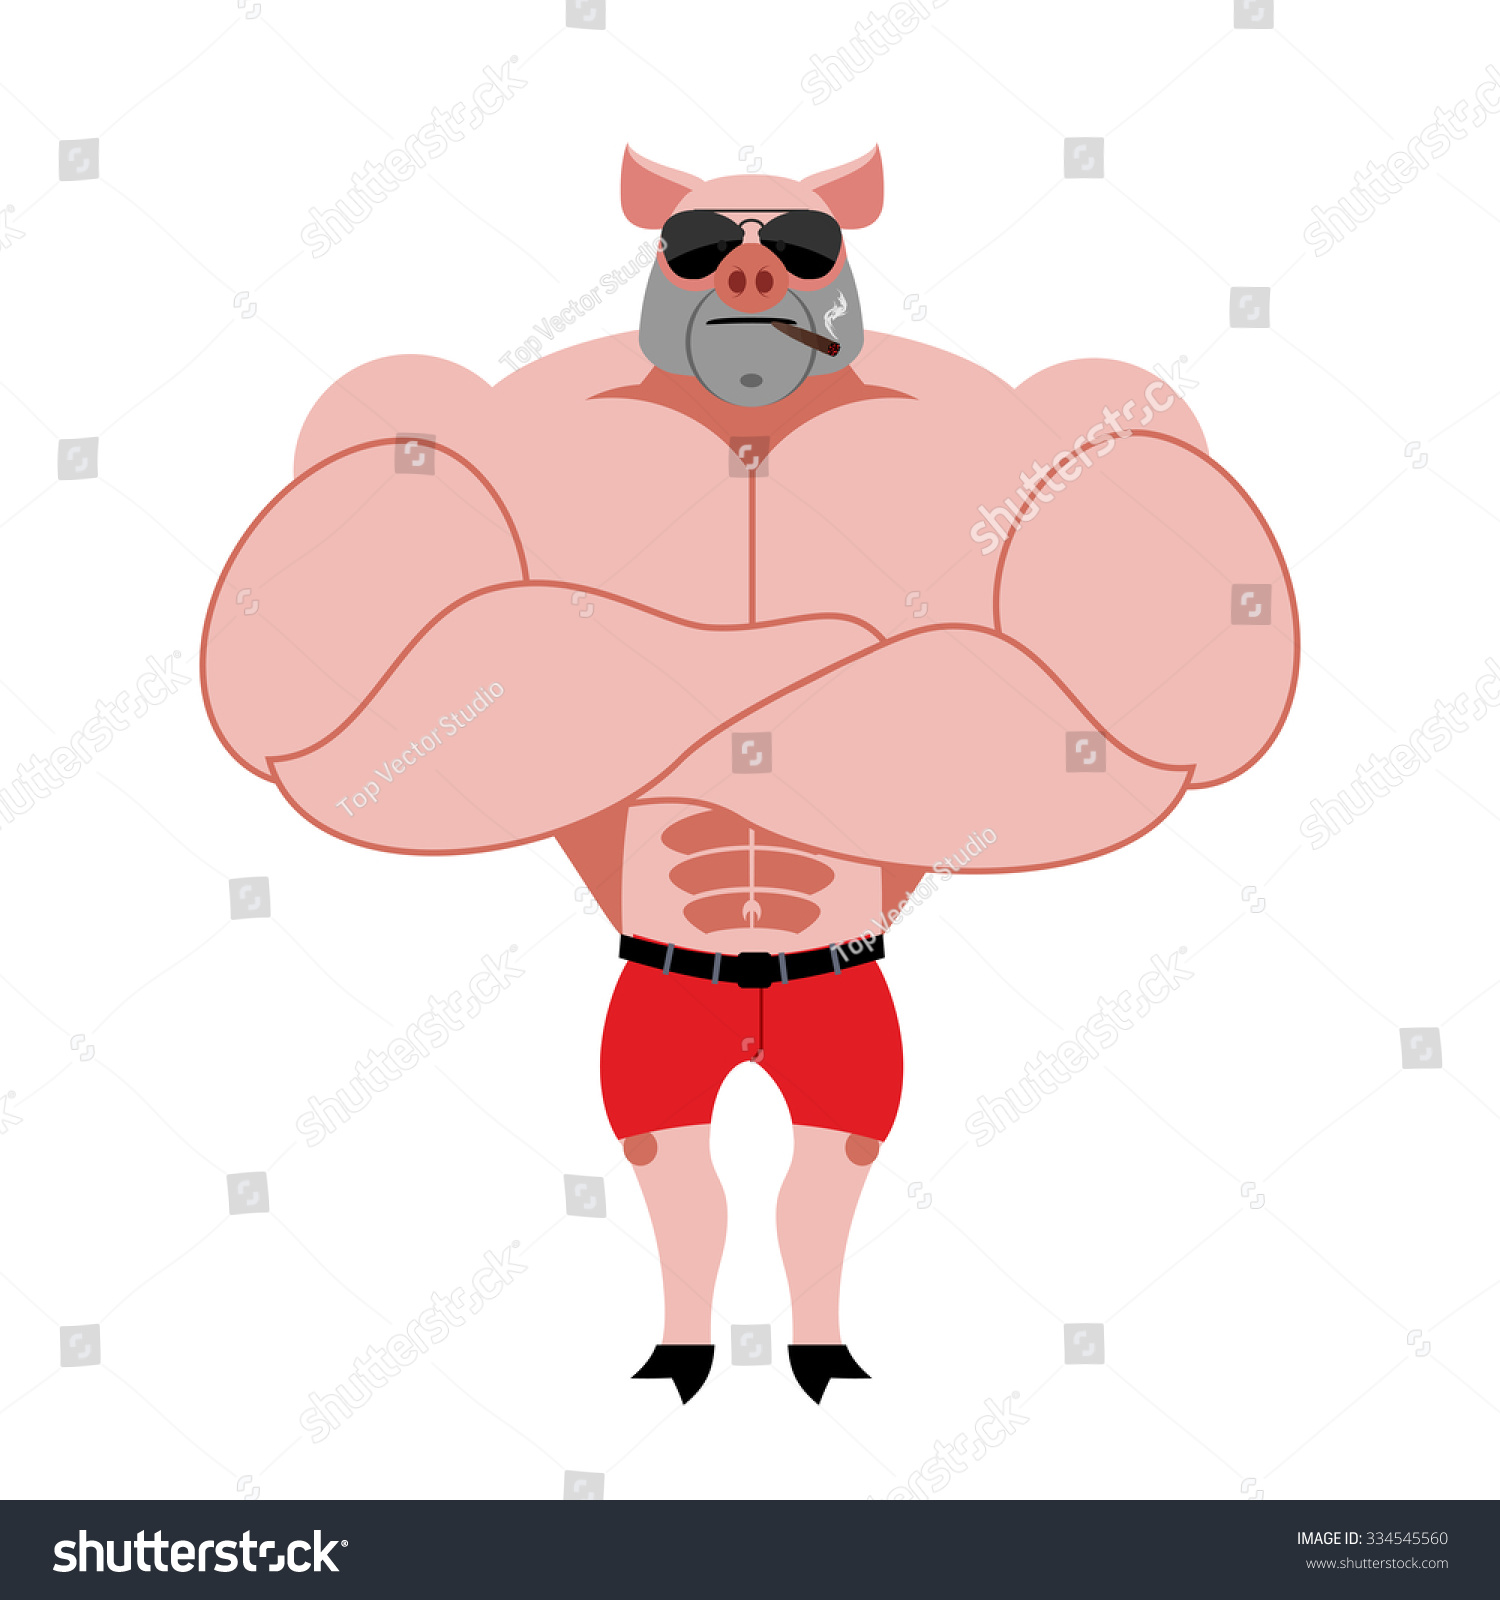 Strong pig bodybuilder with huge muscles. Farm animal athlete